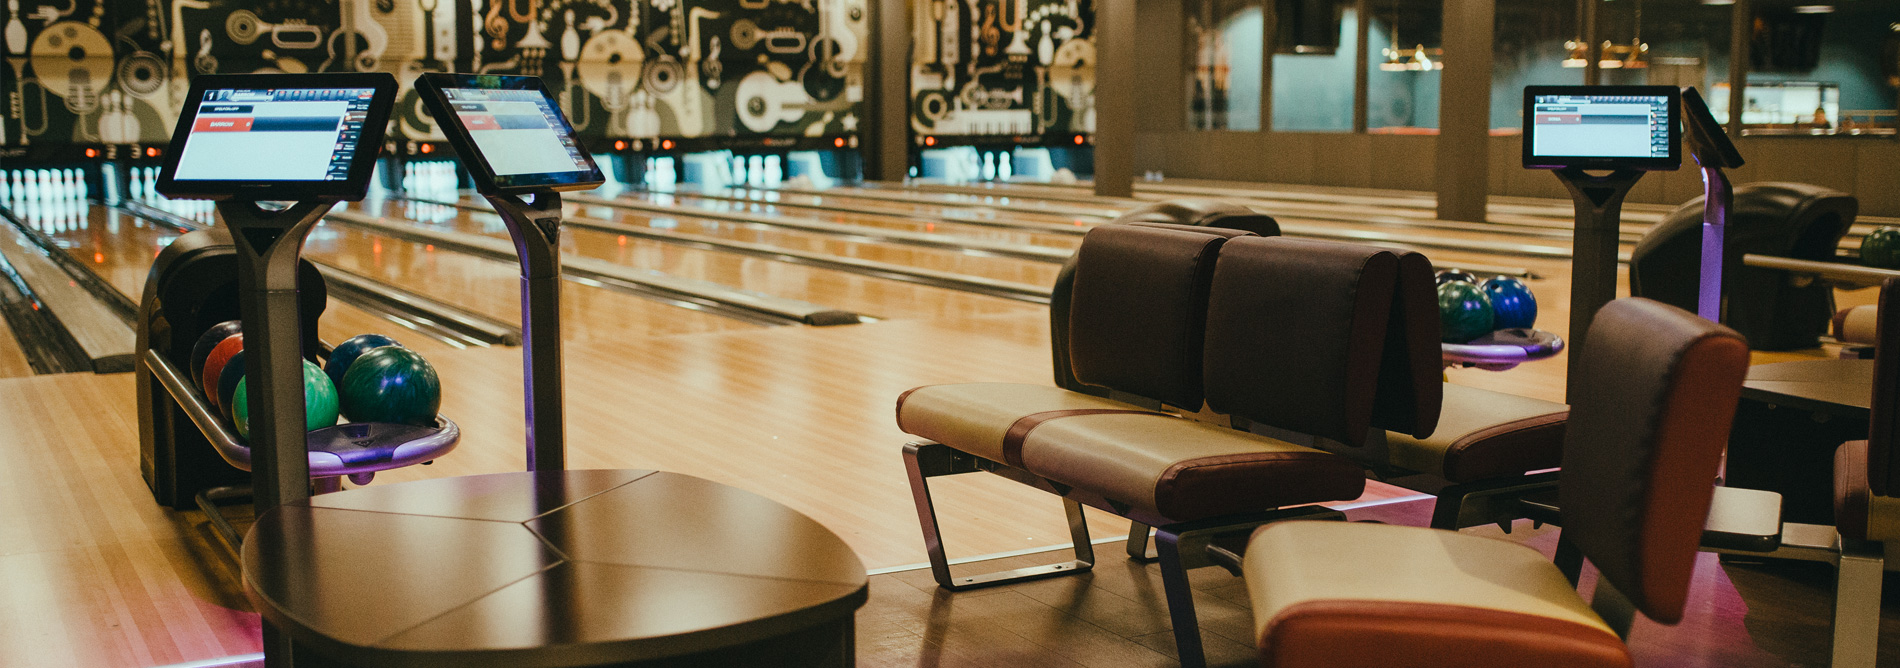 QubicaAMF-bowling-Kyrks-Ten-Lanes-banner.jpg